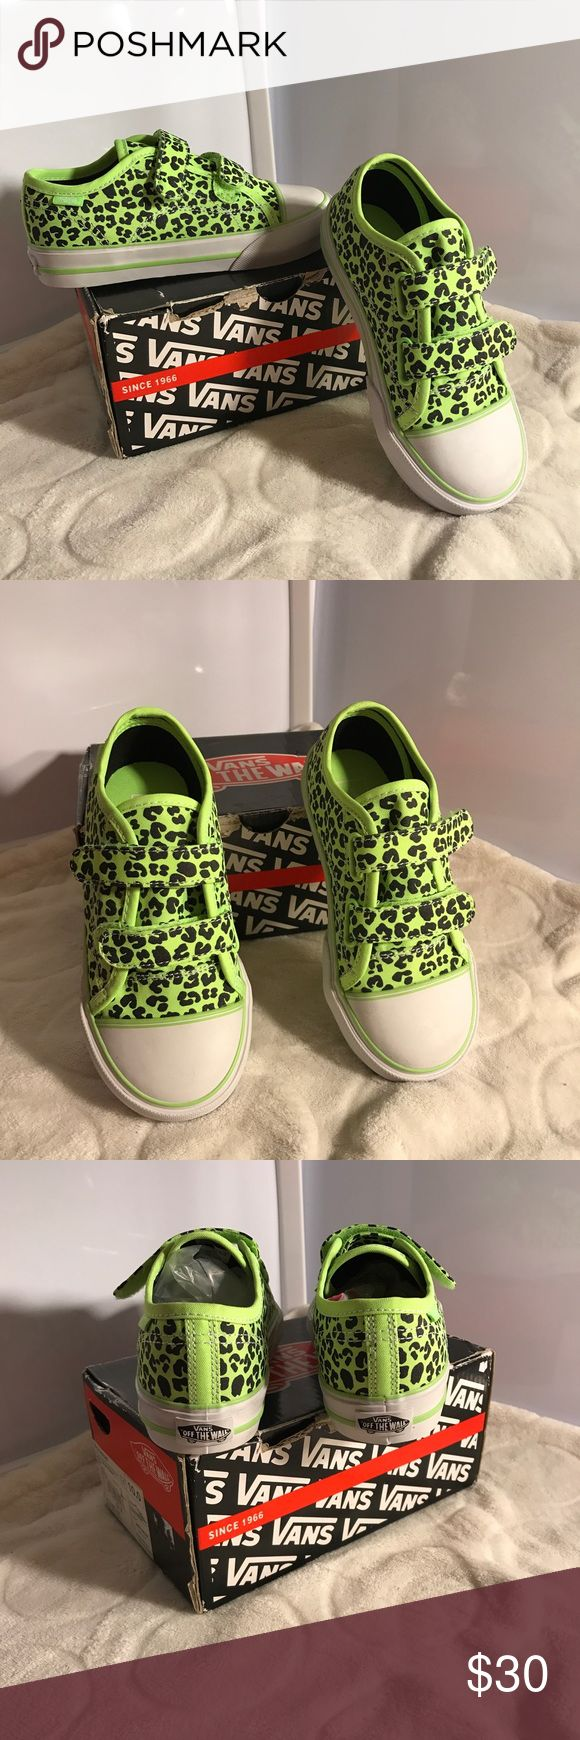 🎀VANS Neon leopard in a green NWT **VANS NEON LEOPARD GREEN VELCRO TIE** 💗NO TRADES/HOLDS💗 -brand-new -size 10T (older toddler/small kid size) -never used -comes in original box -super fun colors and print -iconic style -to Velcro ties on each shoe -comes from a pet free and a smoke free home Vans Shoes Sneakers